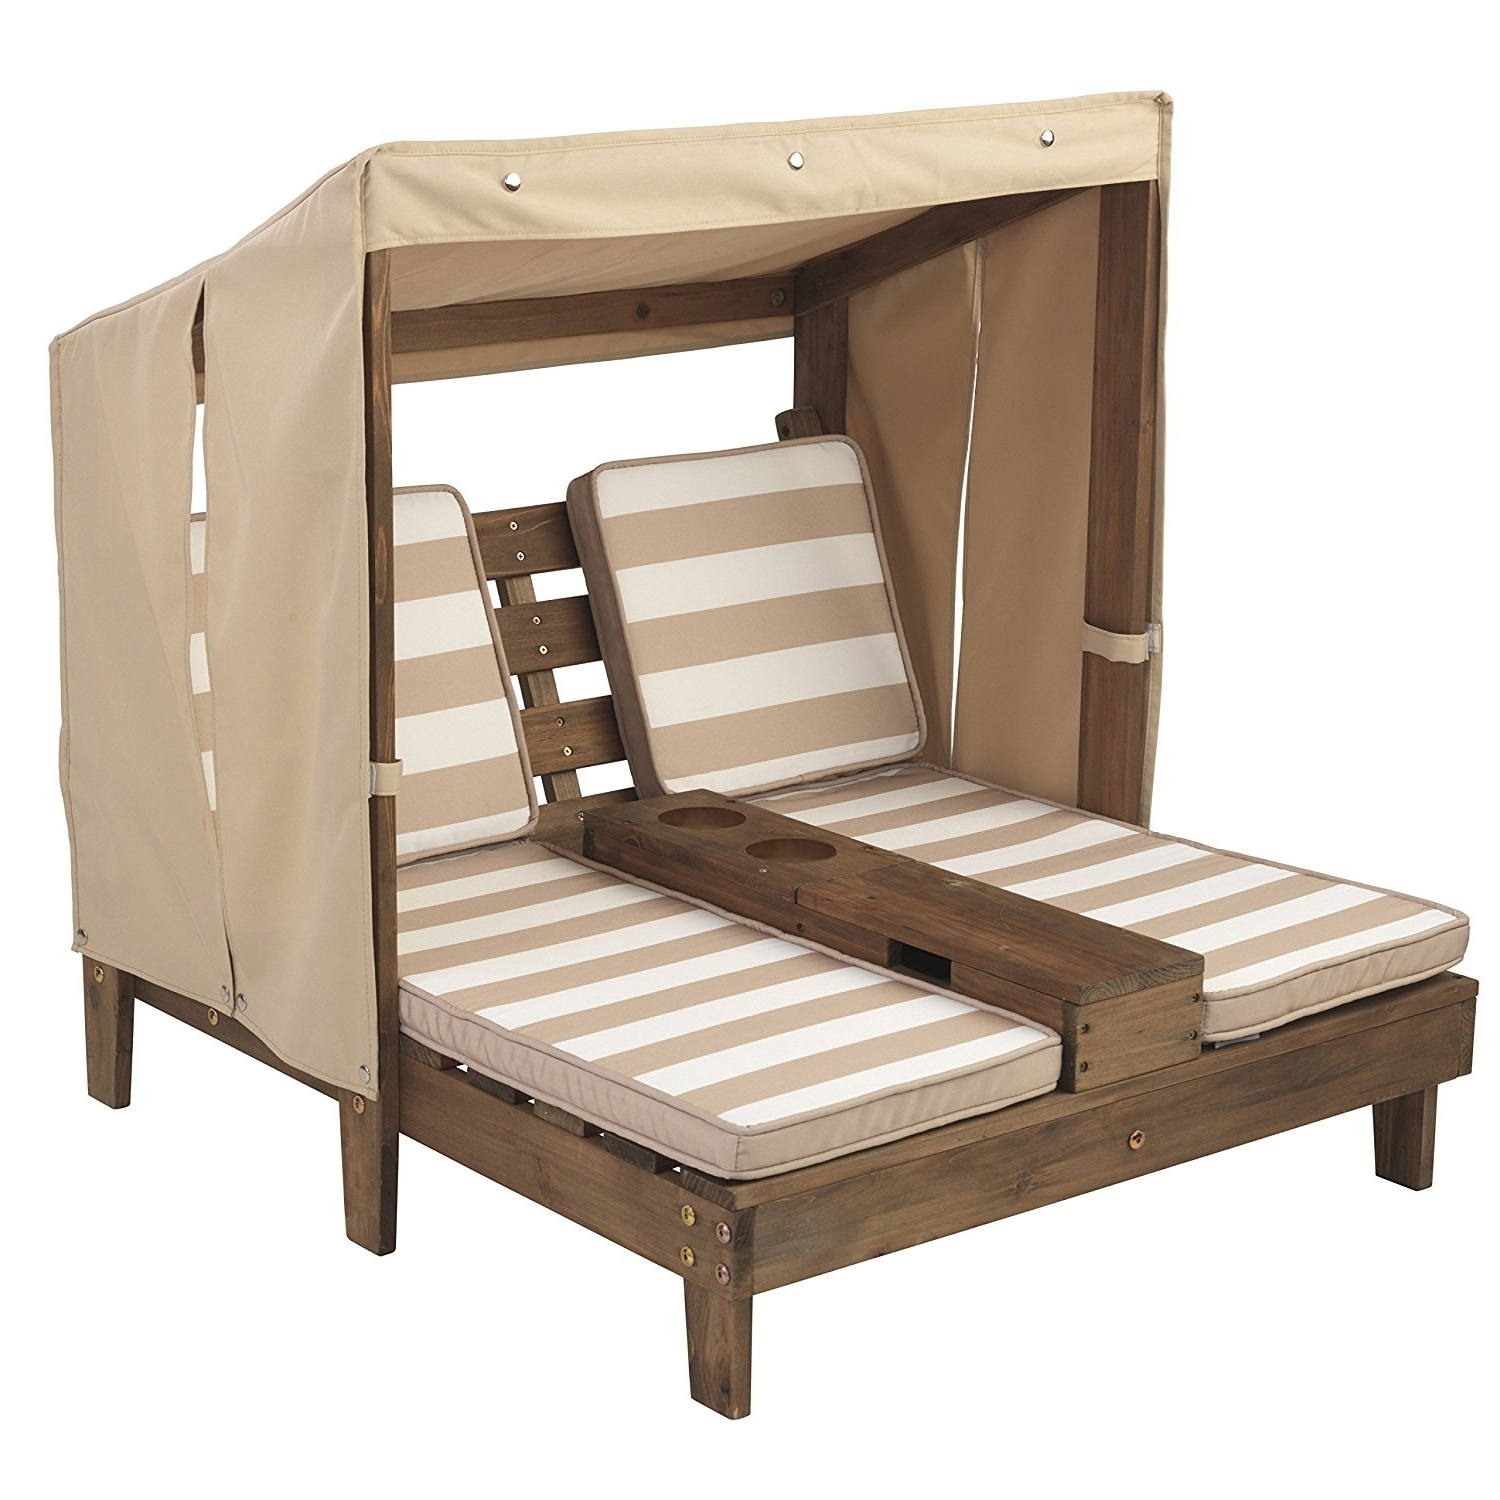 Kidkraft Chaise Lounges Throughout Favorite Amazon: Kidkraft Double Chaise Lounge With Cup Holders: Toys (View 8 of 15)